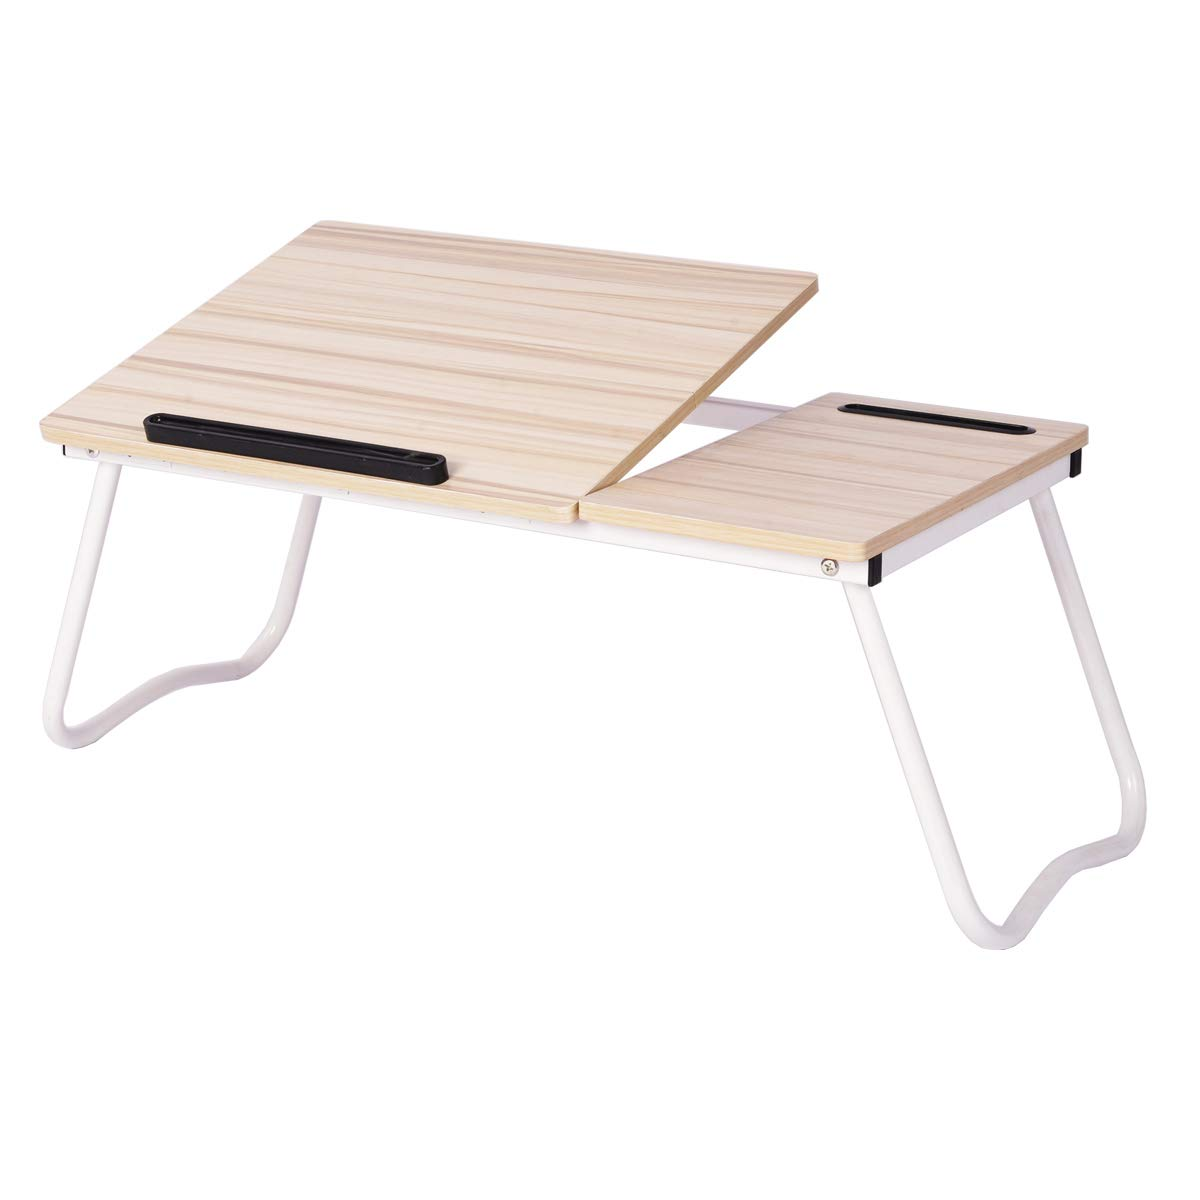 Penck Laptop Tray Desk Adjustable Lap Table Bed Tray Portable TV Tray Floor Table - Foldable Sofa Breakfast Serving Standing Tray, Notebook Stand Reading Writing Holder for Couch Floor - Minitable